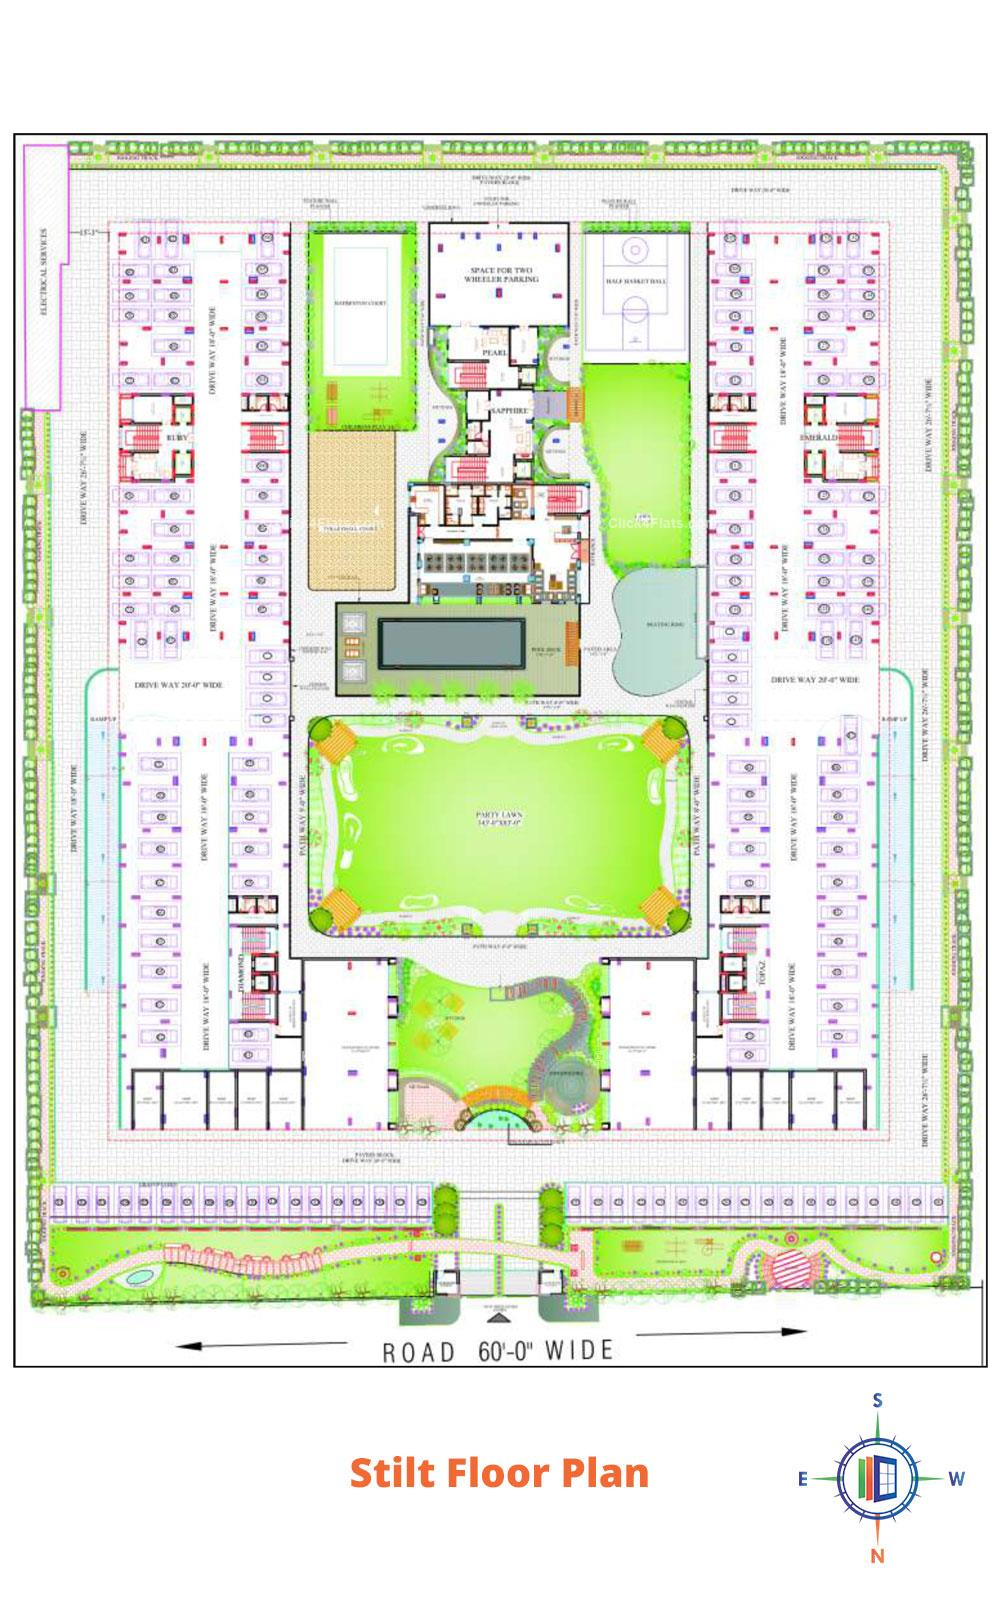 Kohinoor Residency Stilt Floor Plan